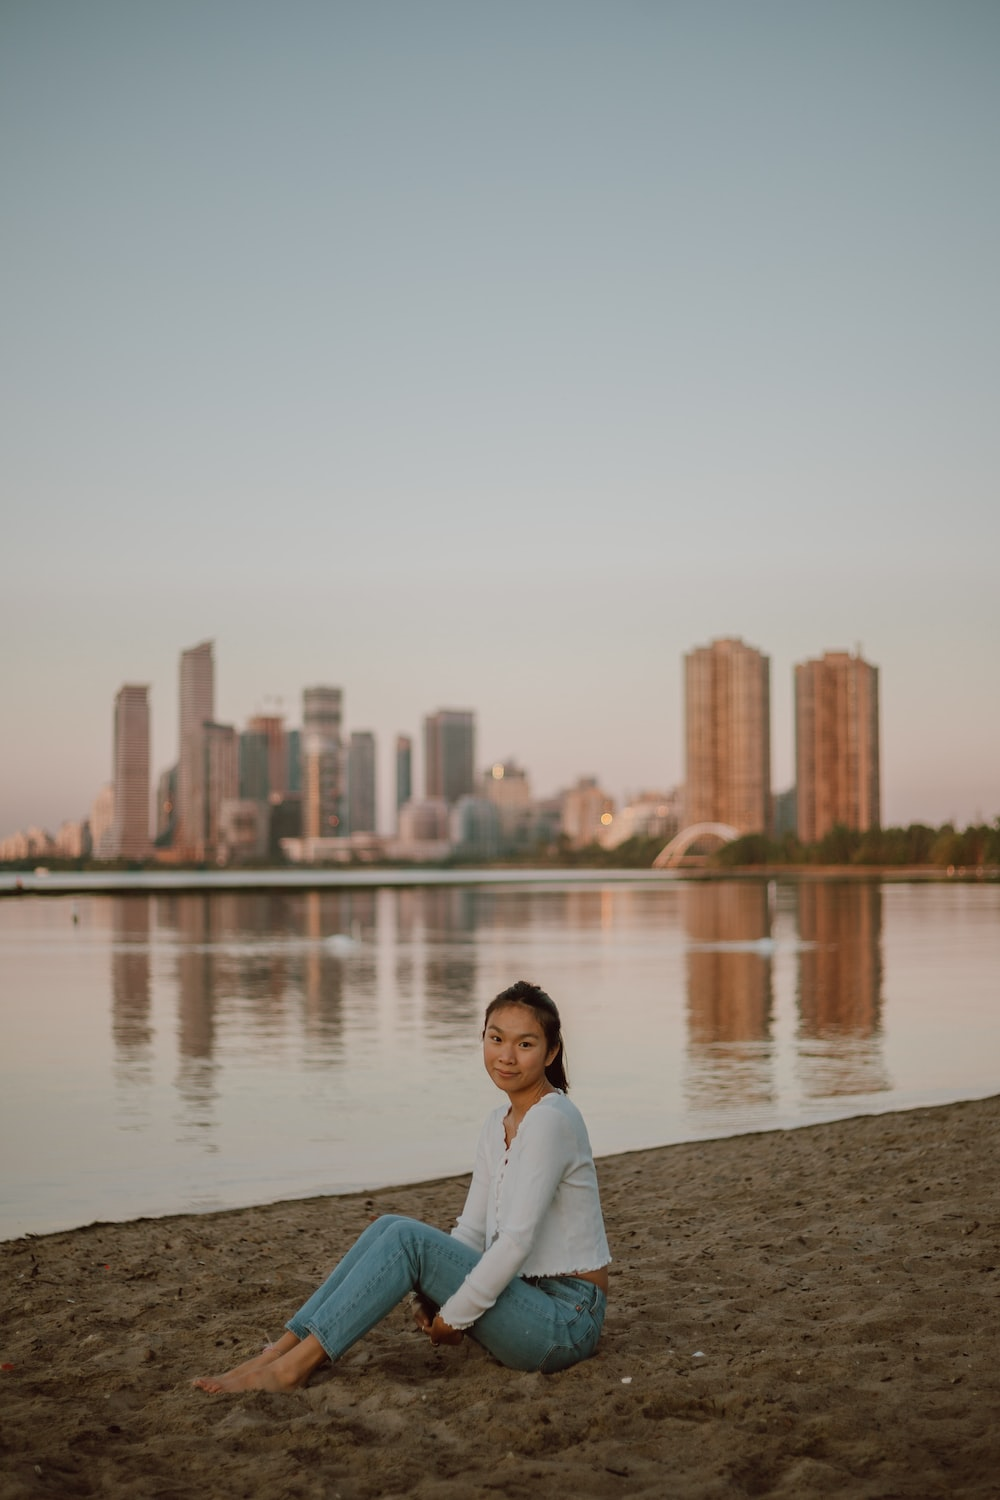 woman in white long sleeve shirt sitting on gray concrete bench near body of water during